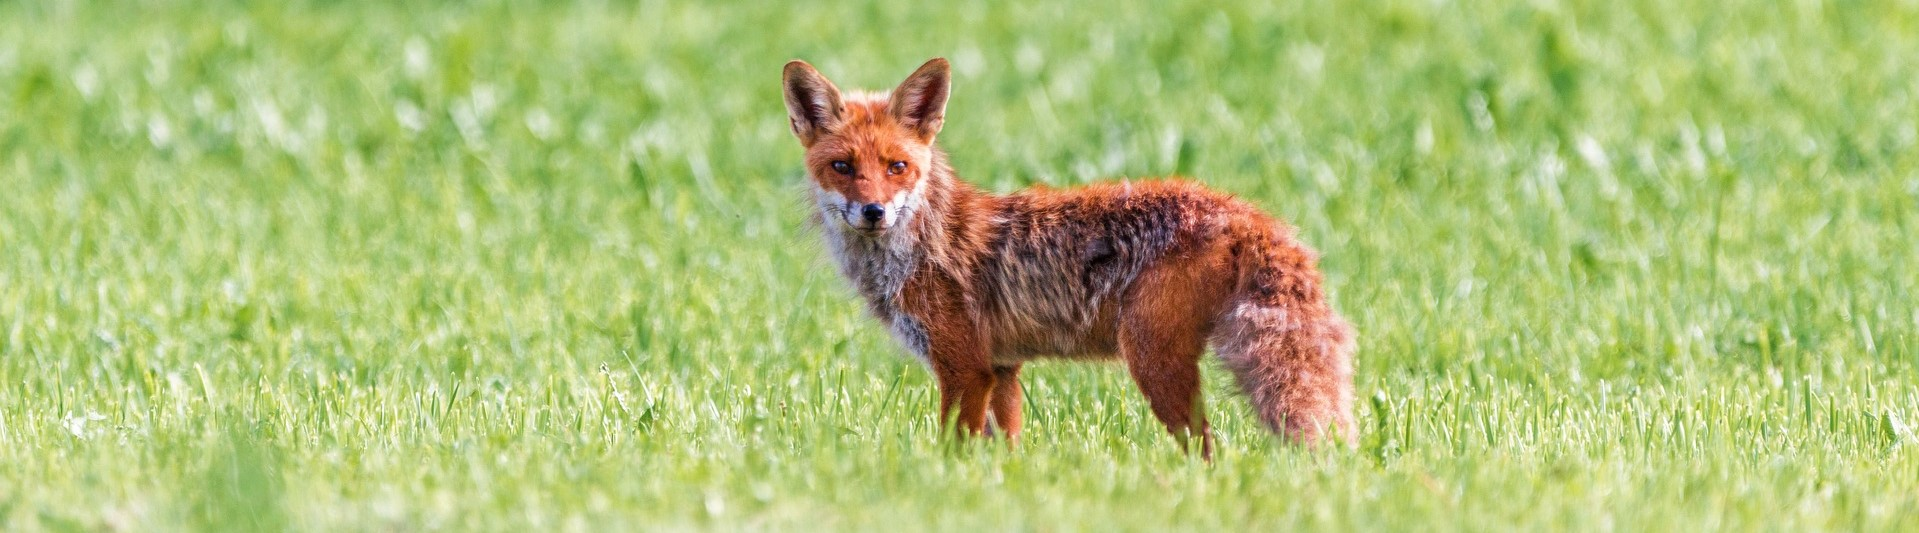 Photograph of a red fox